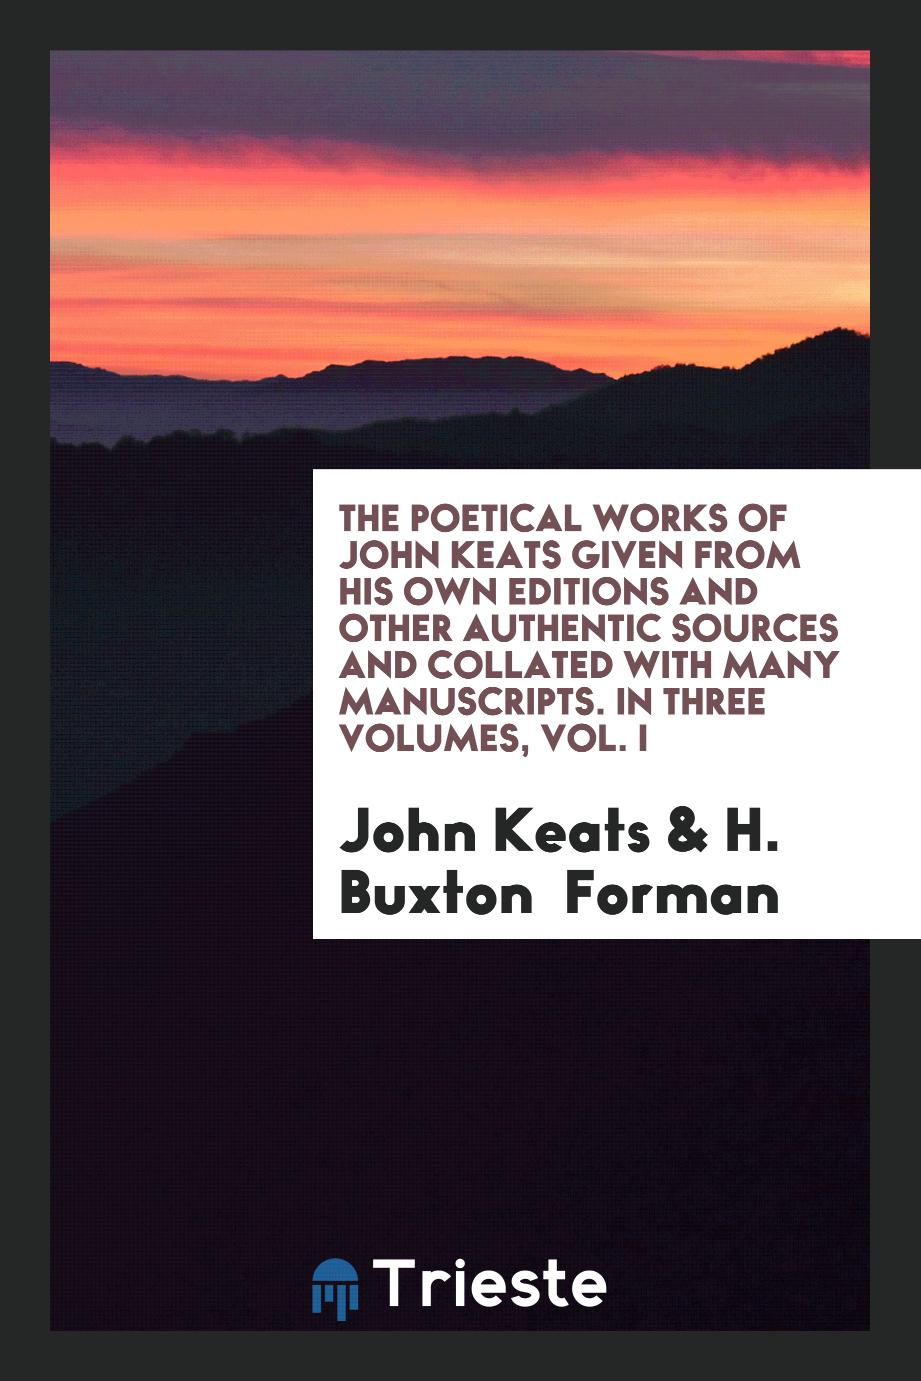 The Poetical Works of John Keats Given from His Own Editions and Other Authentic Sources and Collated with Many Manuscripts. In Three Volumes, Vol. I